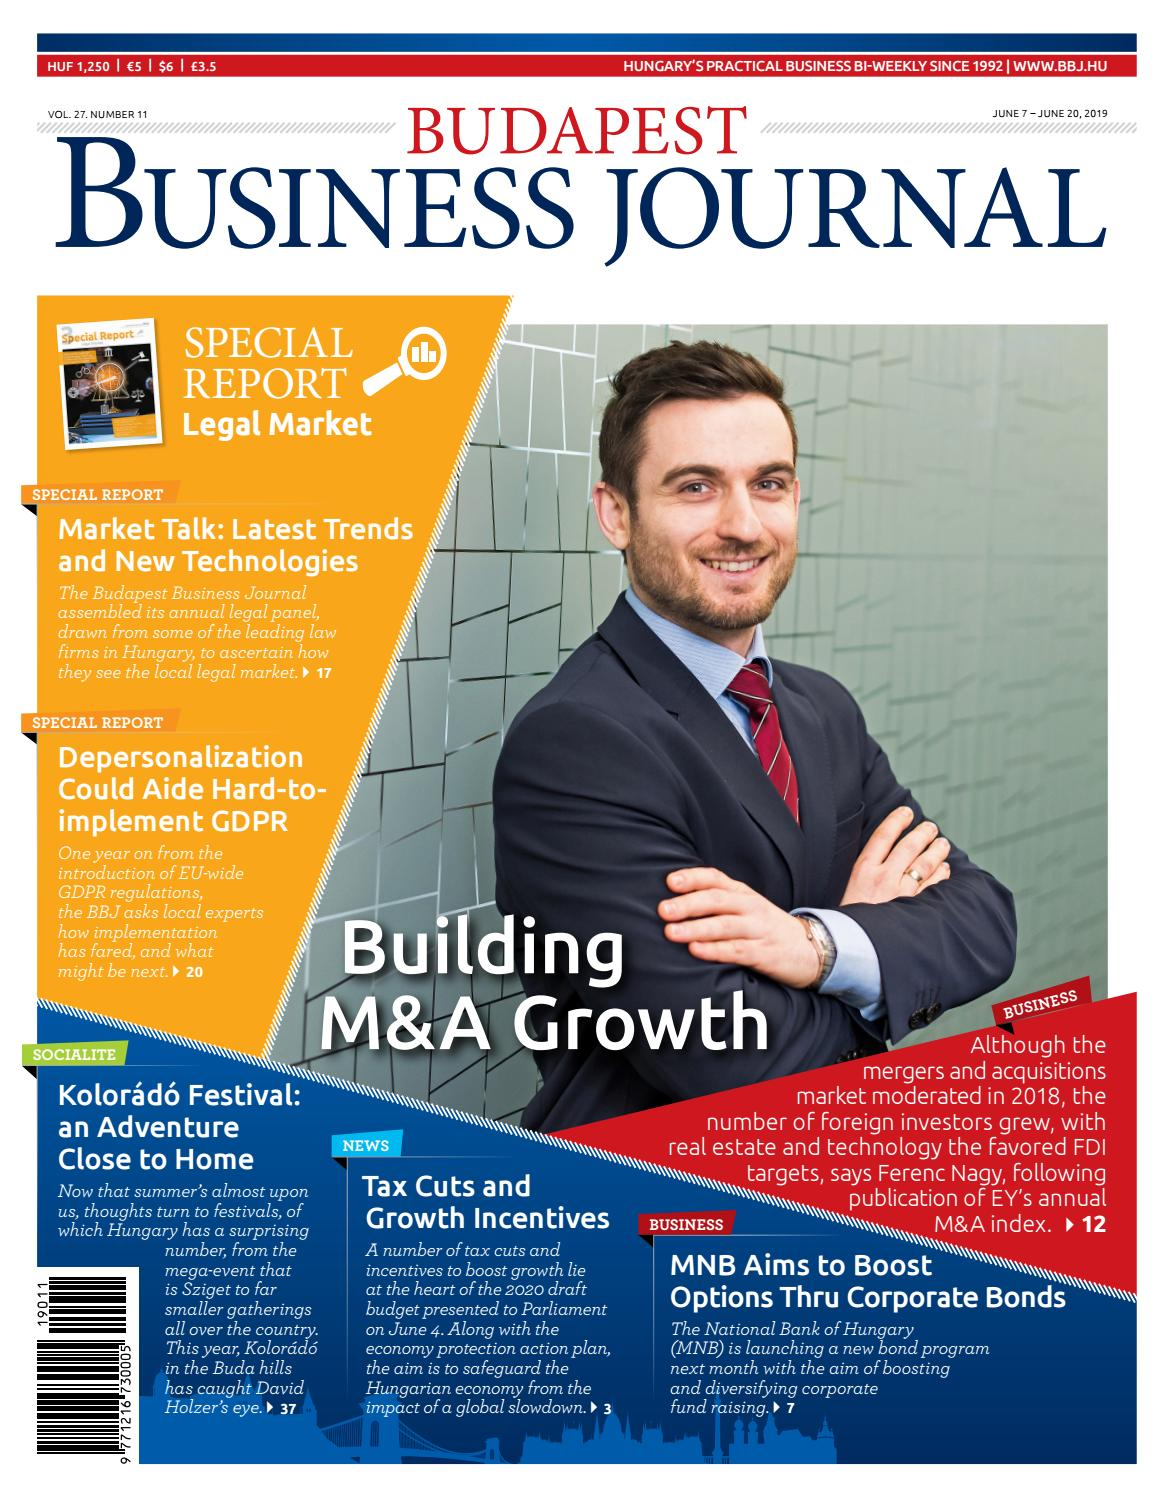 Budapest Business Journal 2711 By Business Publishing Services Kft